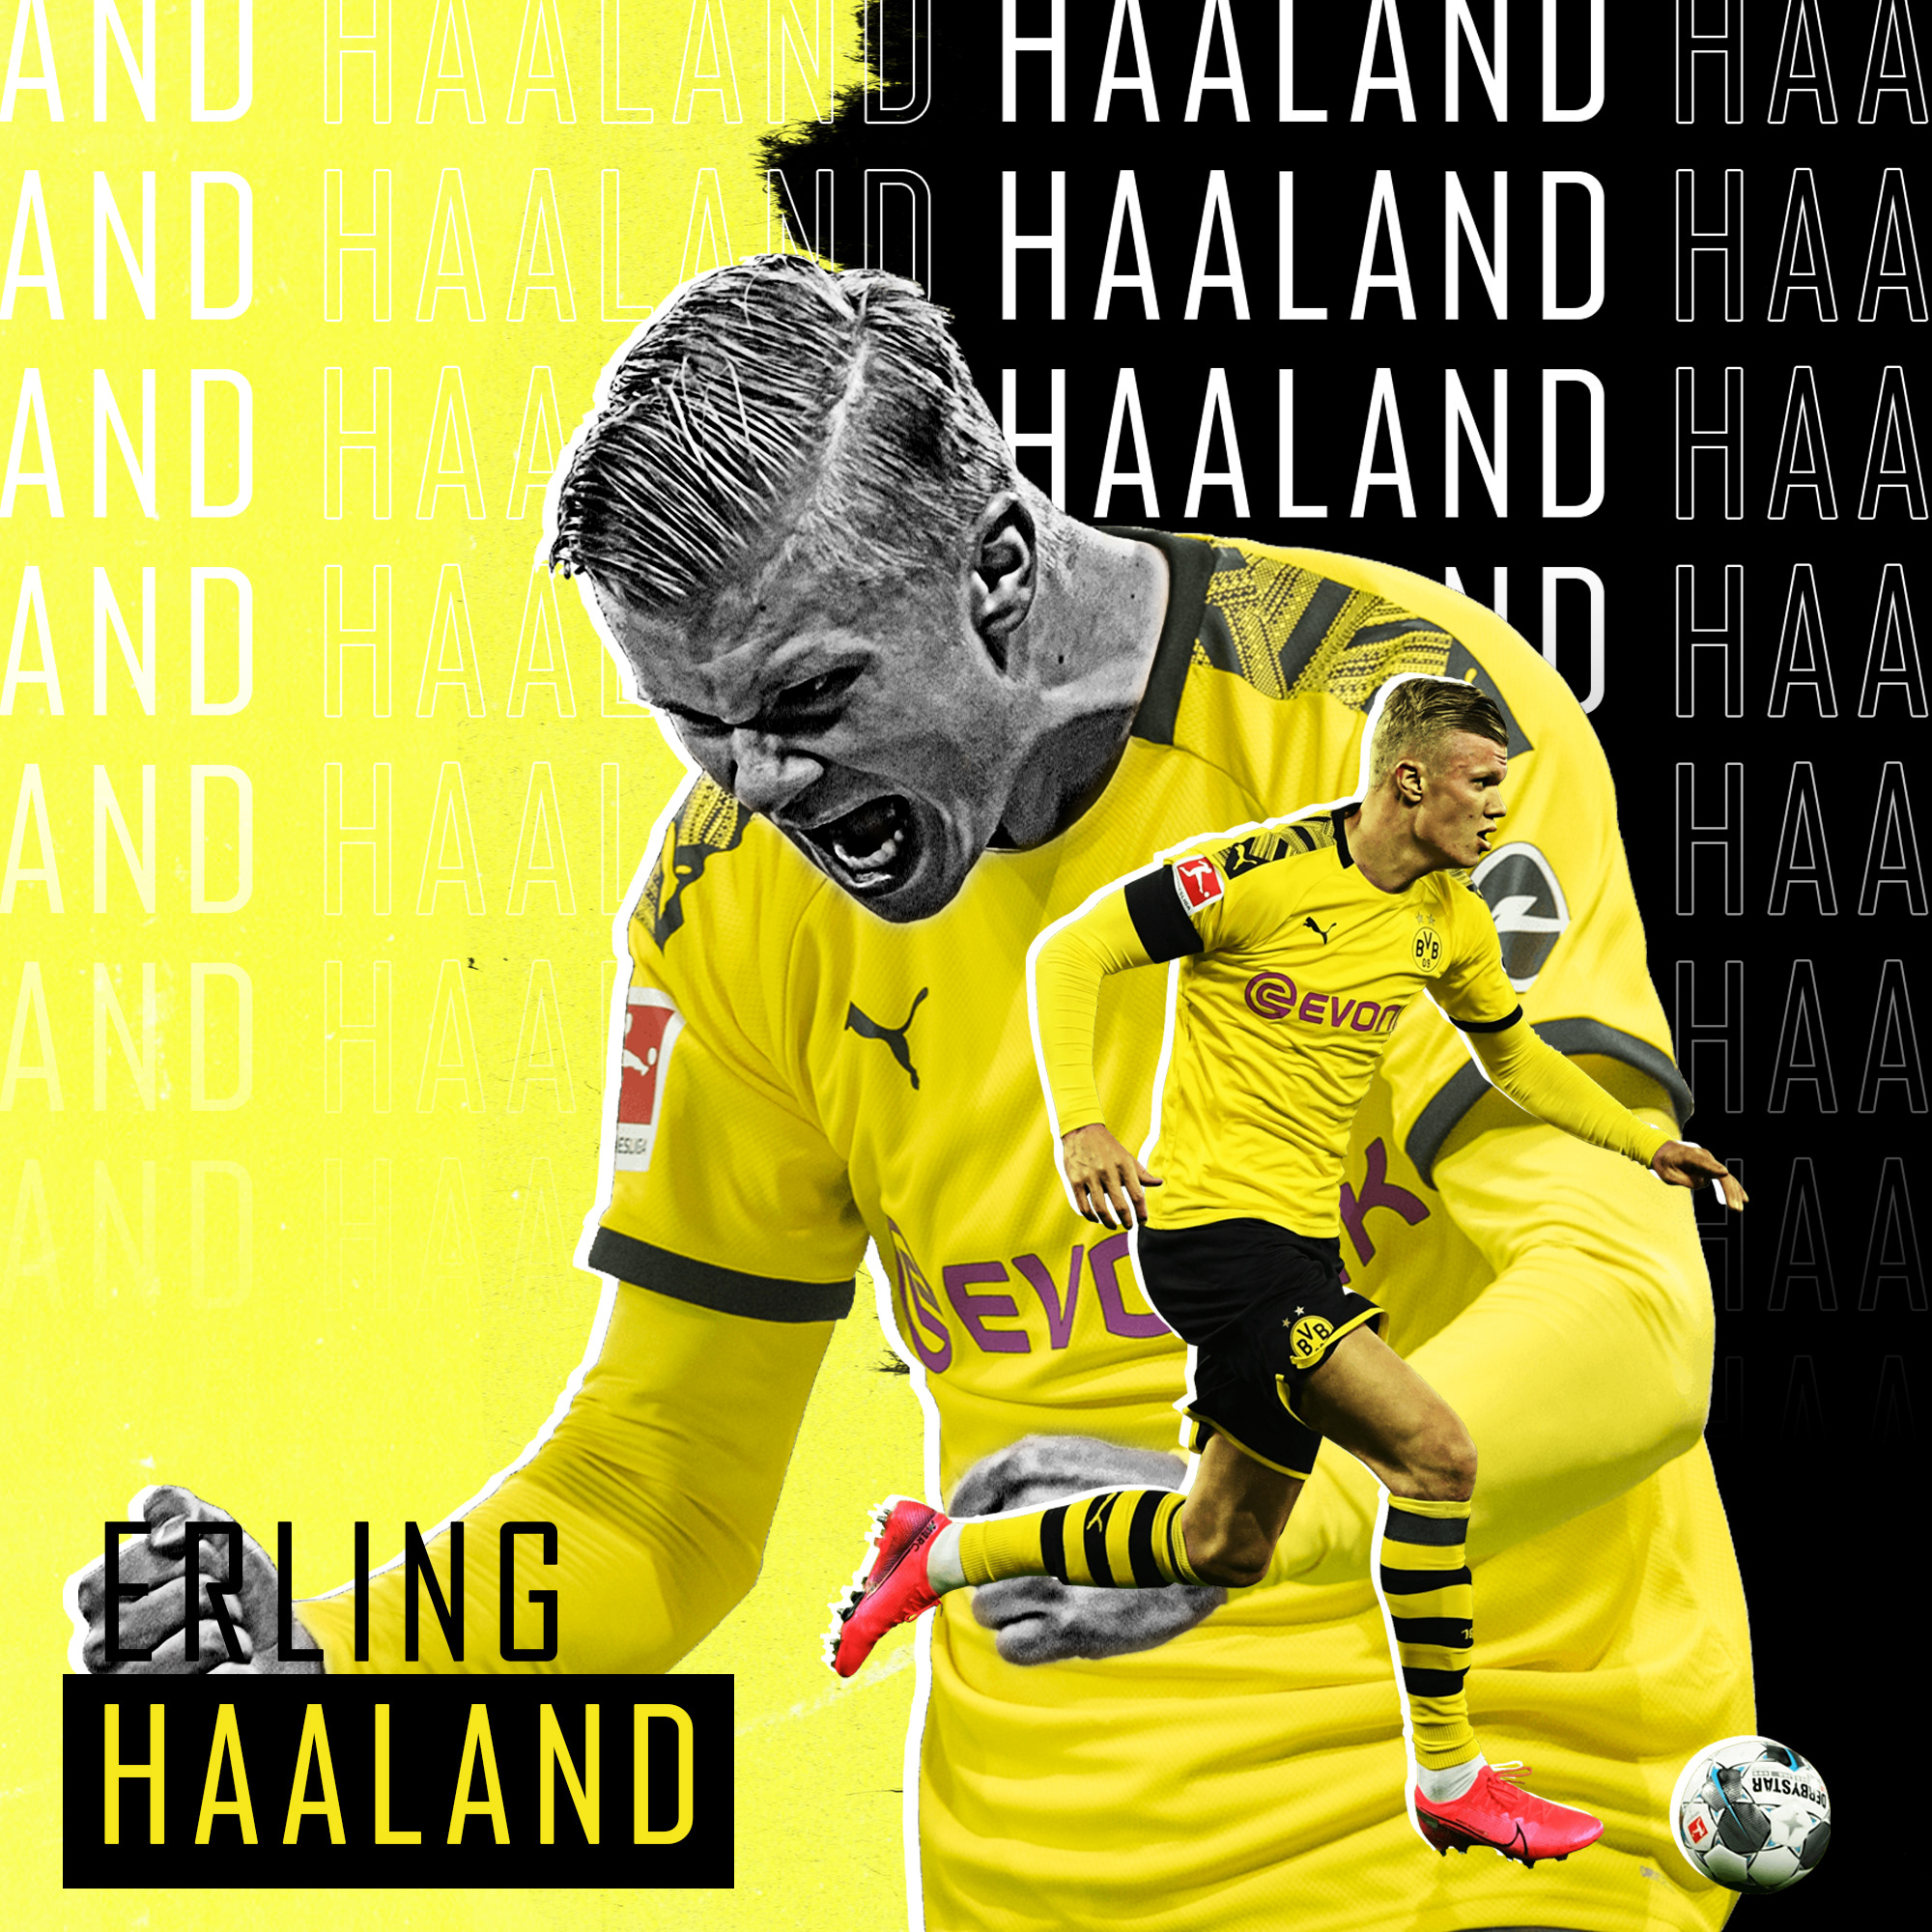 Haaland Projects Photos Videos Logos Illustrations And Branding On Behance